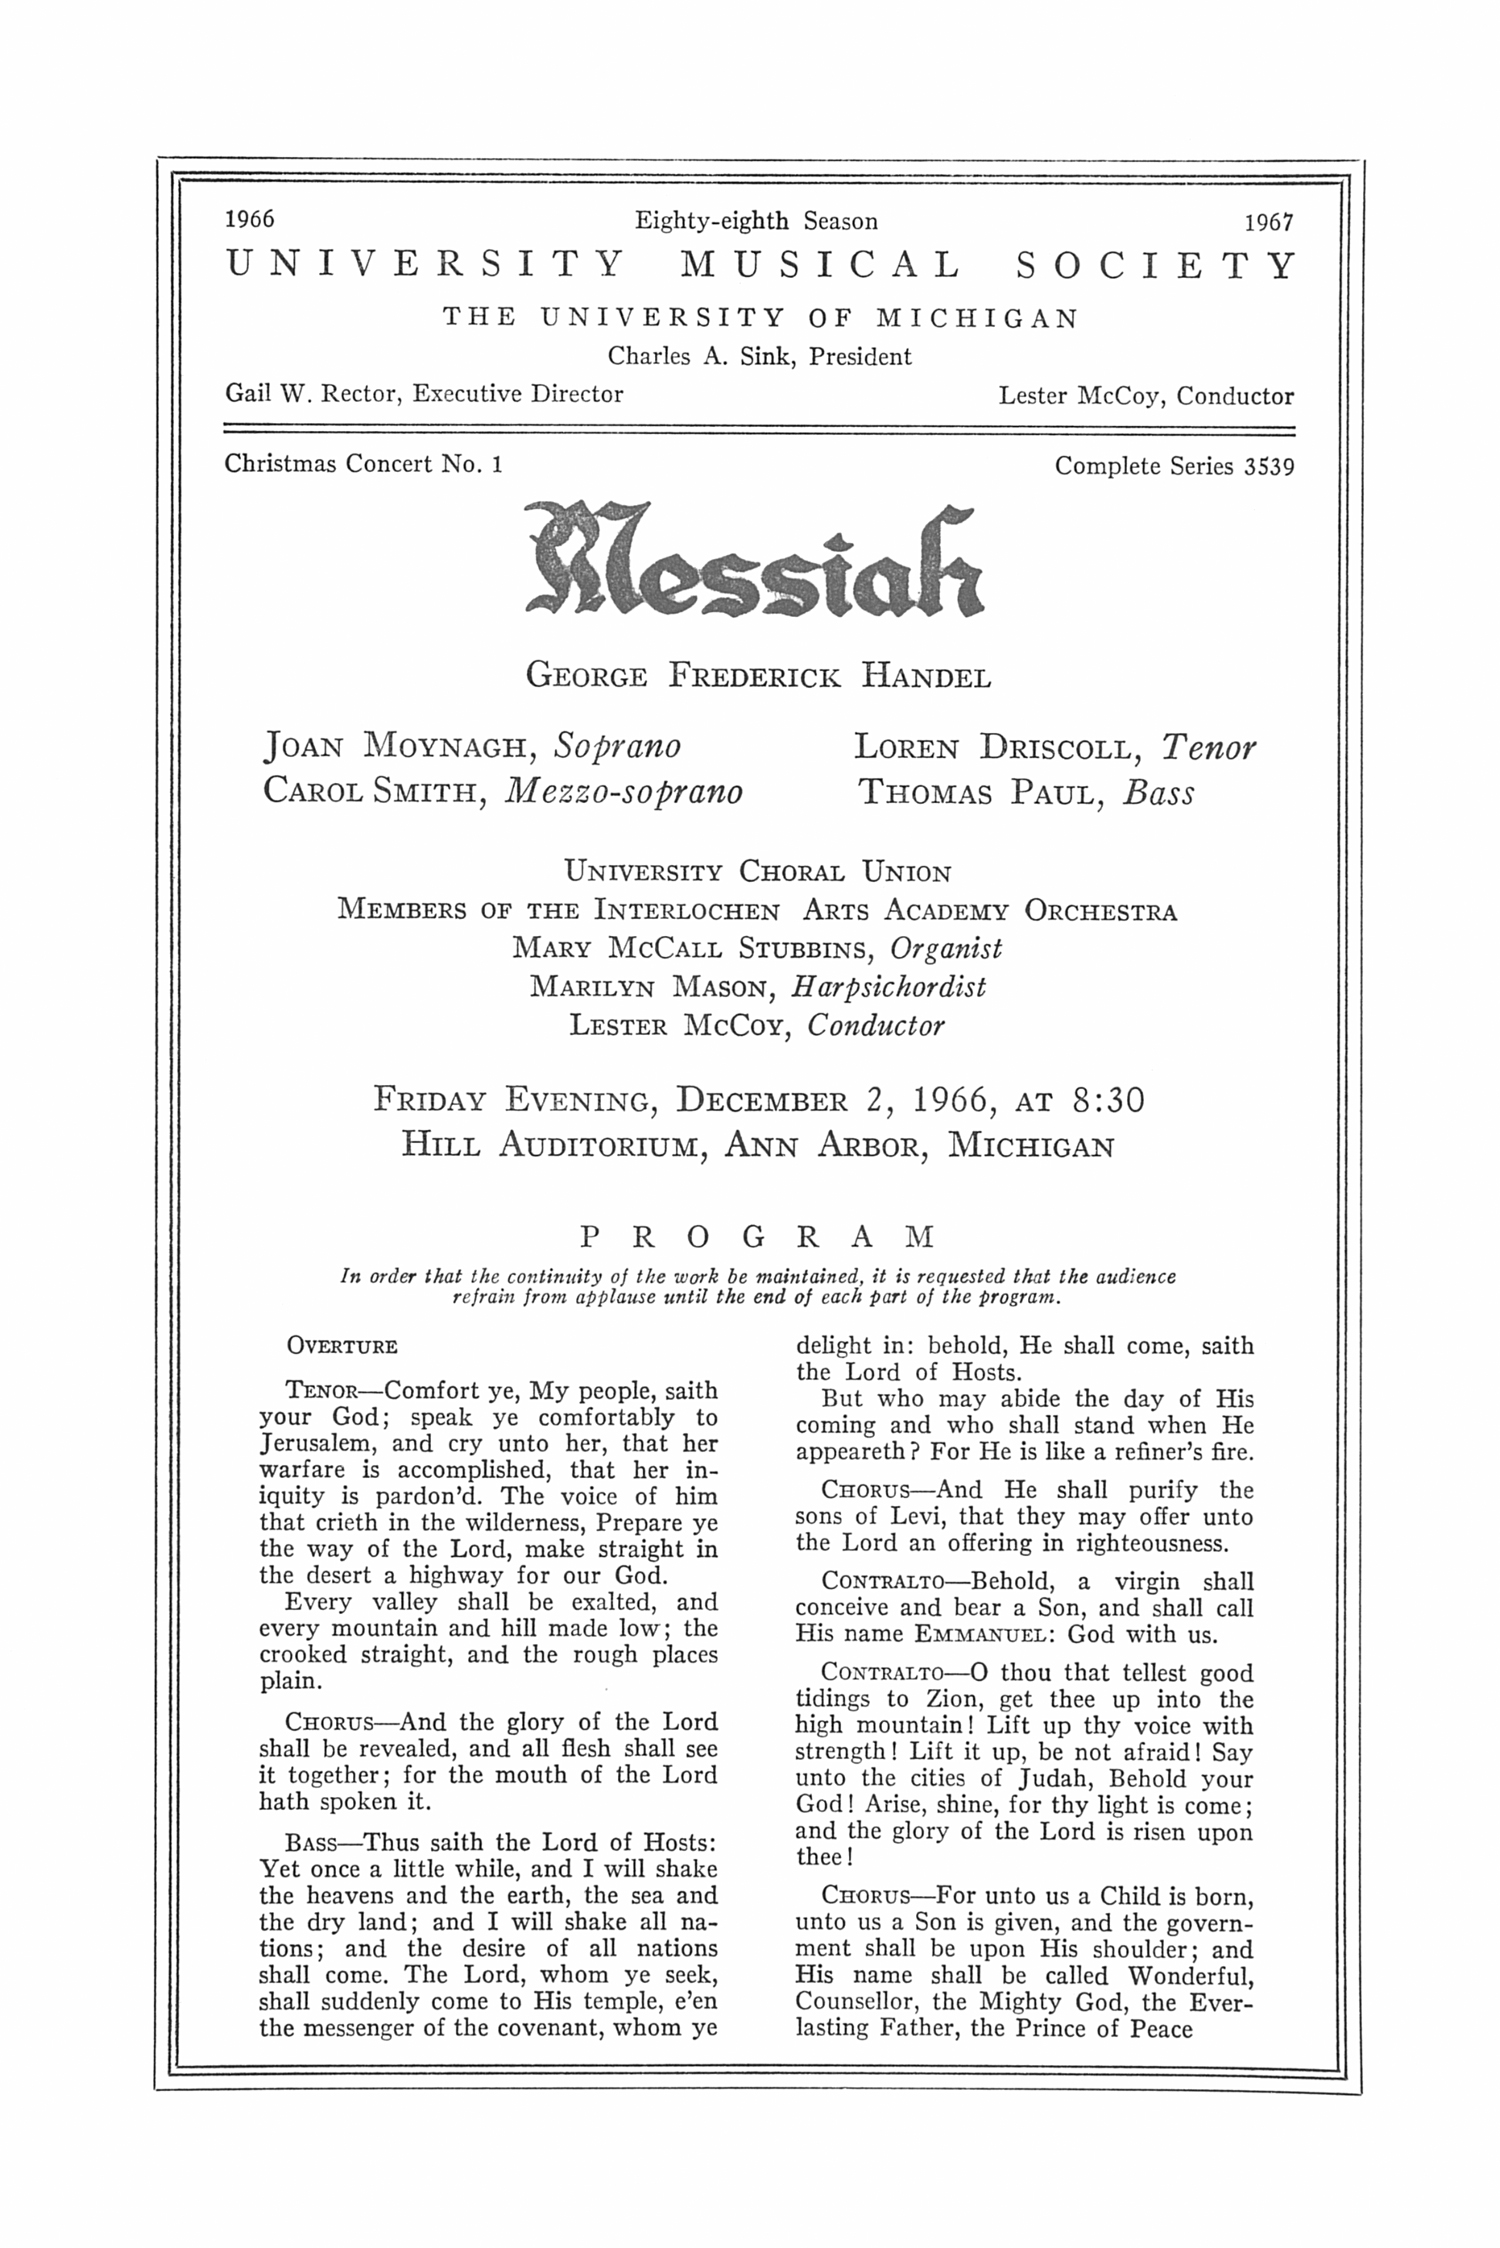 UMS Concert Program, December 2, 1966: Messiah -- George Frederick Handel image